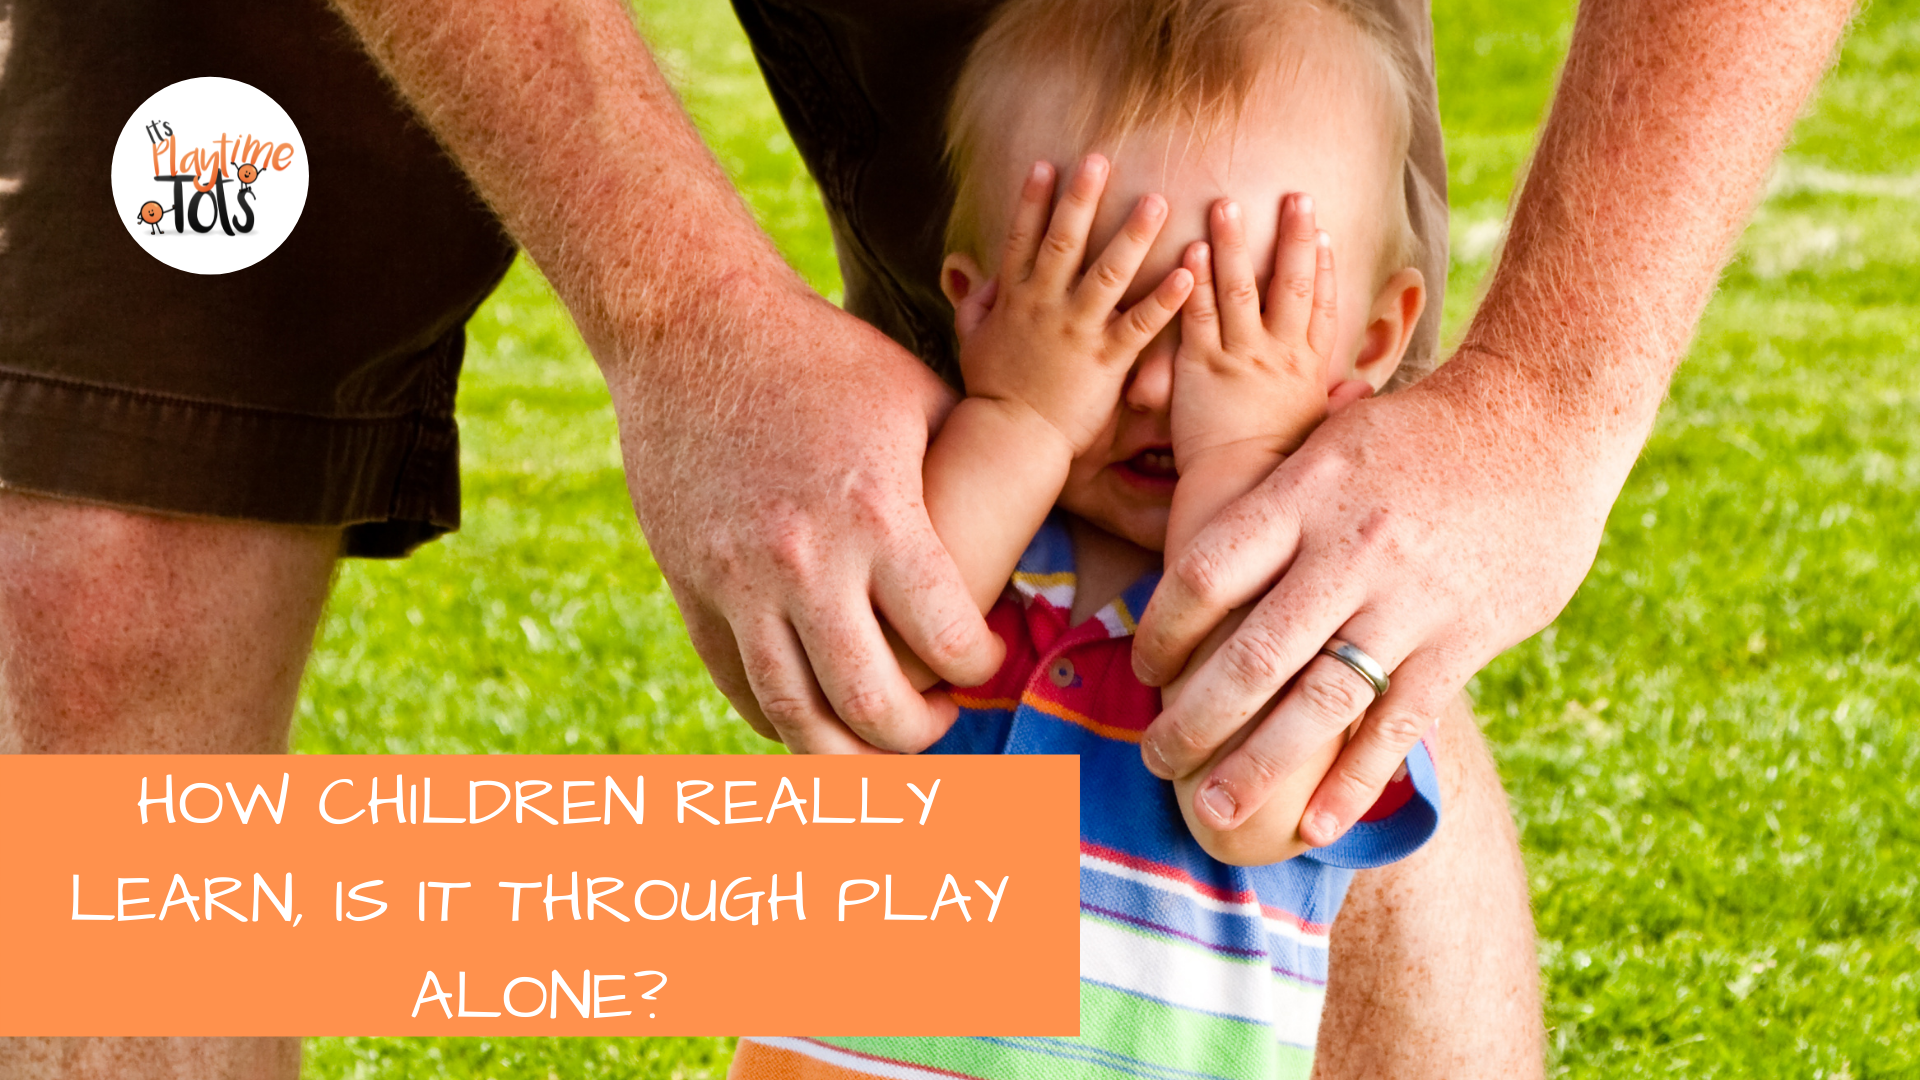 How Children Really Learn, Is It Through Play Alone?